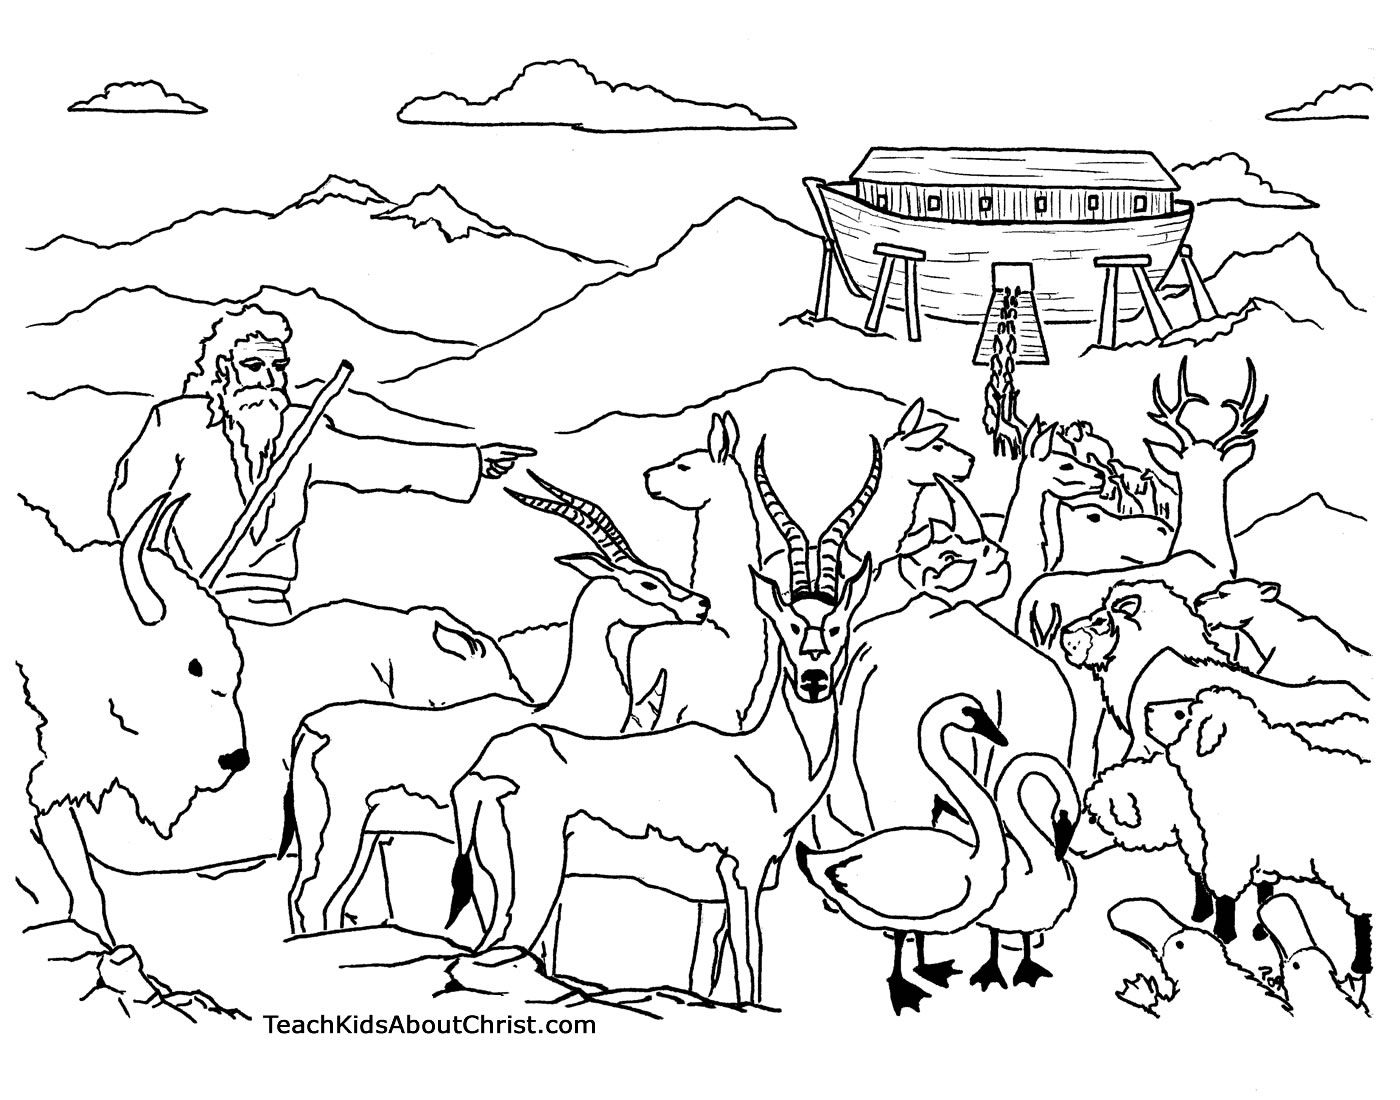 Coloring pages bible stories preschoolers - Noah Ark Coloring Pages Printable Coloring Pages